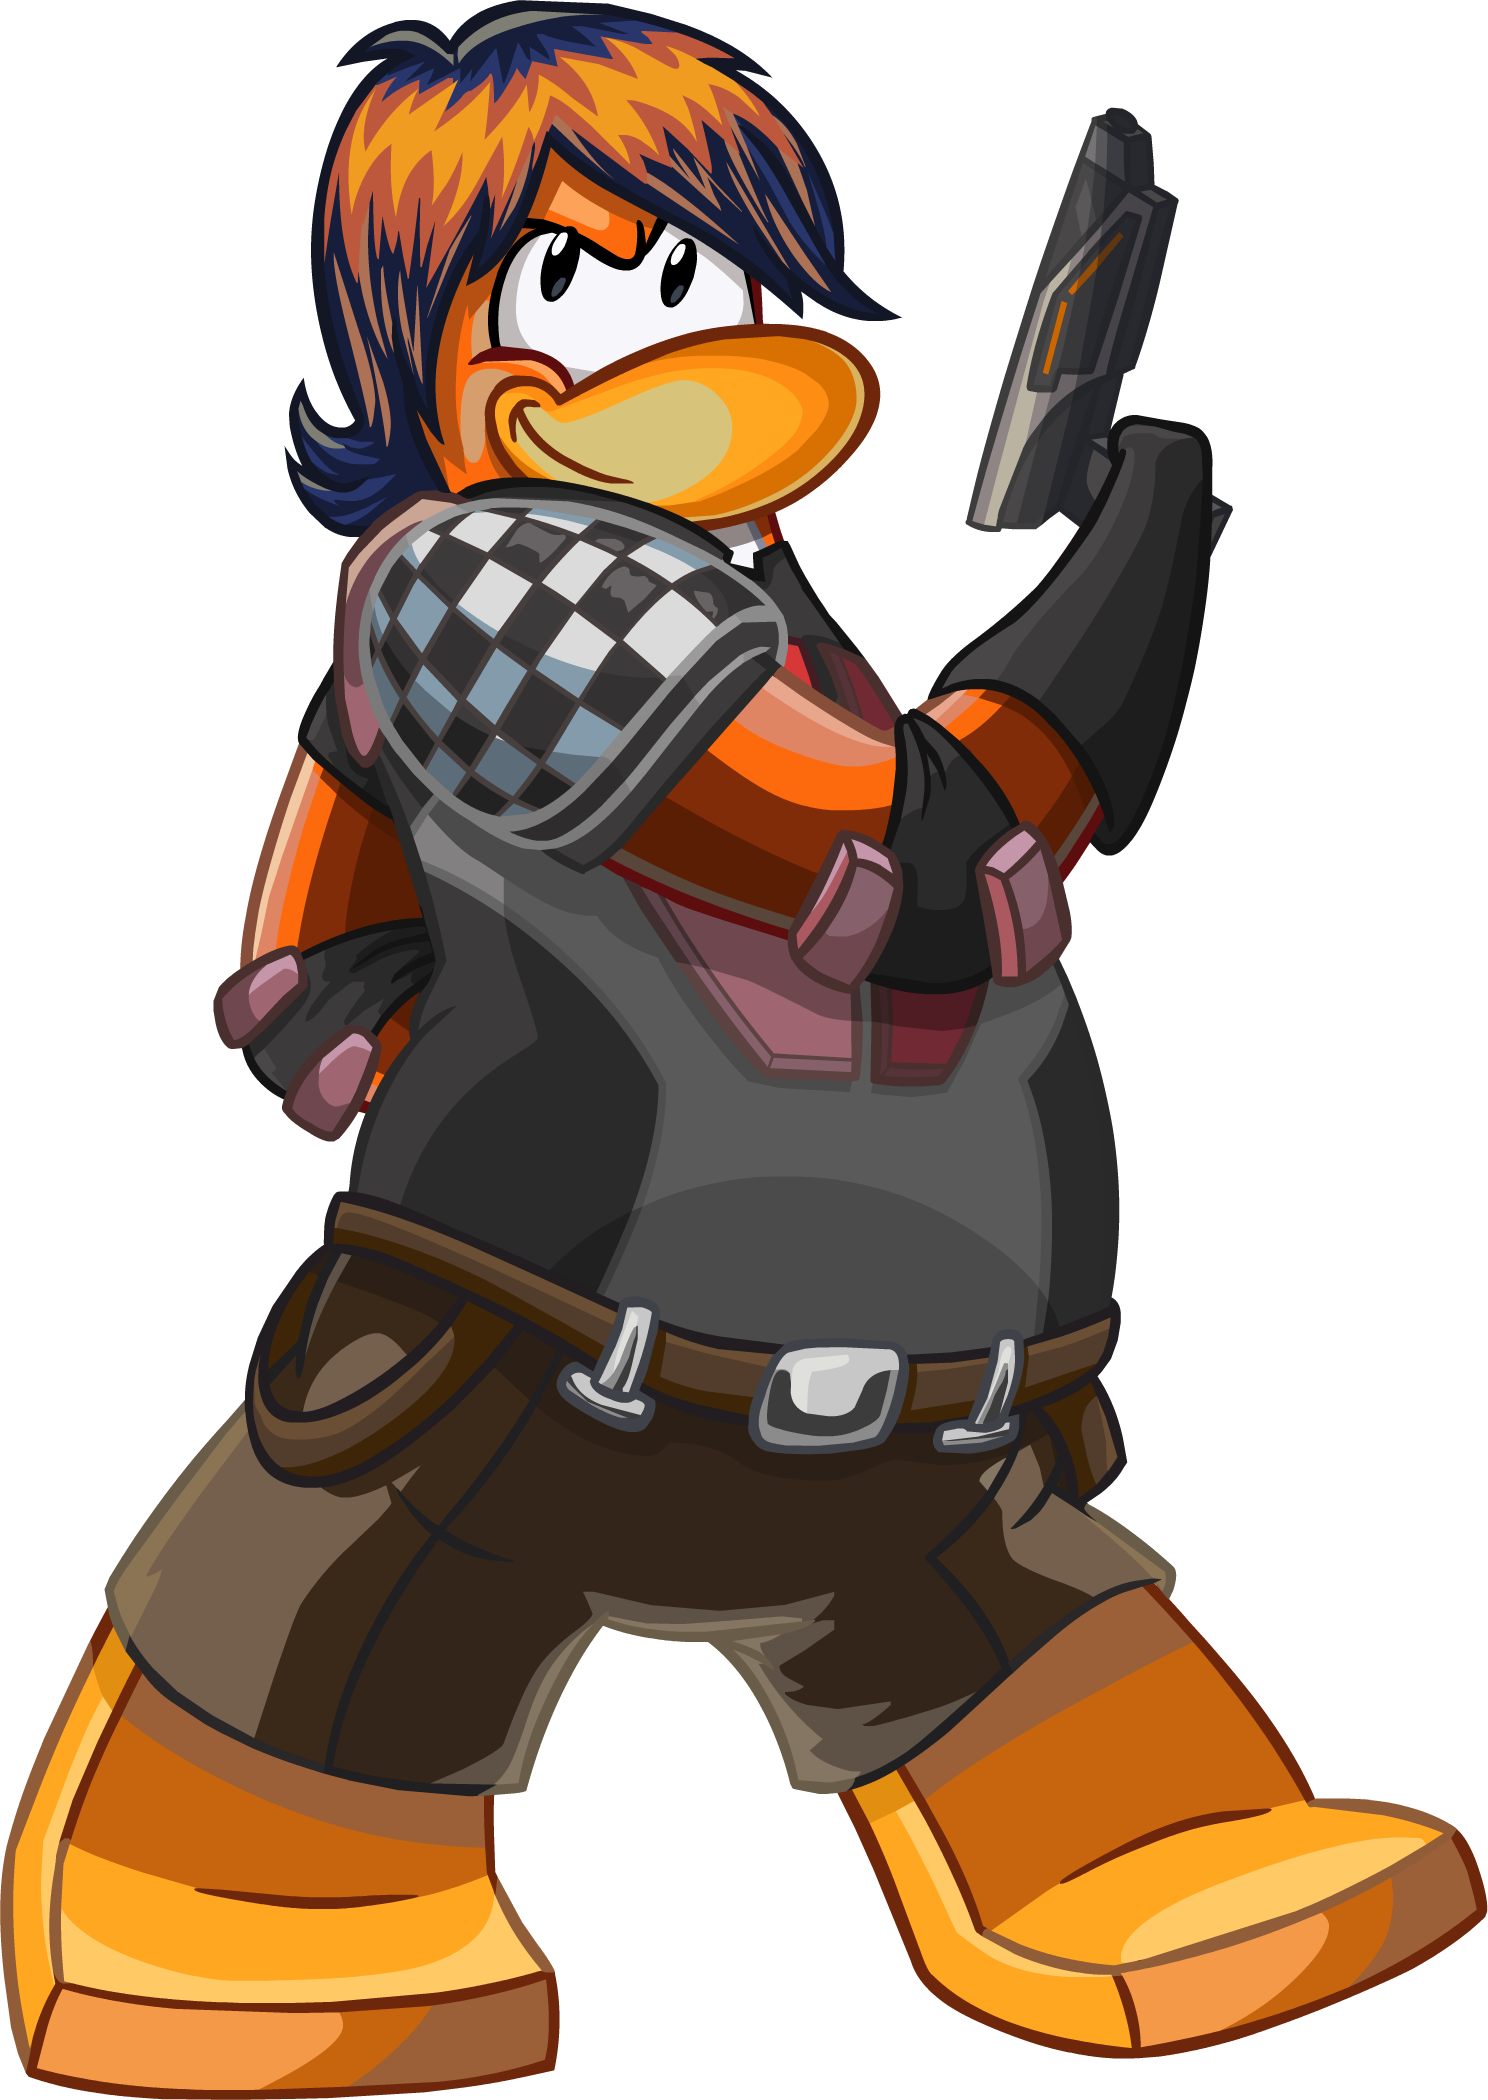 Star wars rebels clipart png library library Sabine Wren | Club Penguin Wiki | FANDOM powered by Wikia png library library